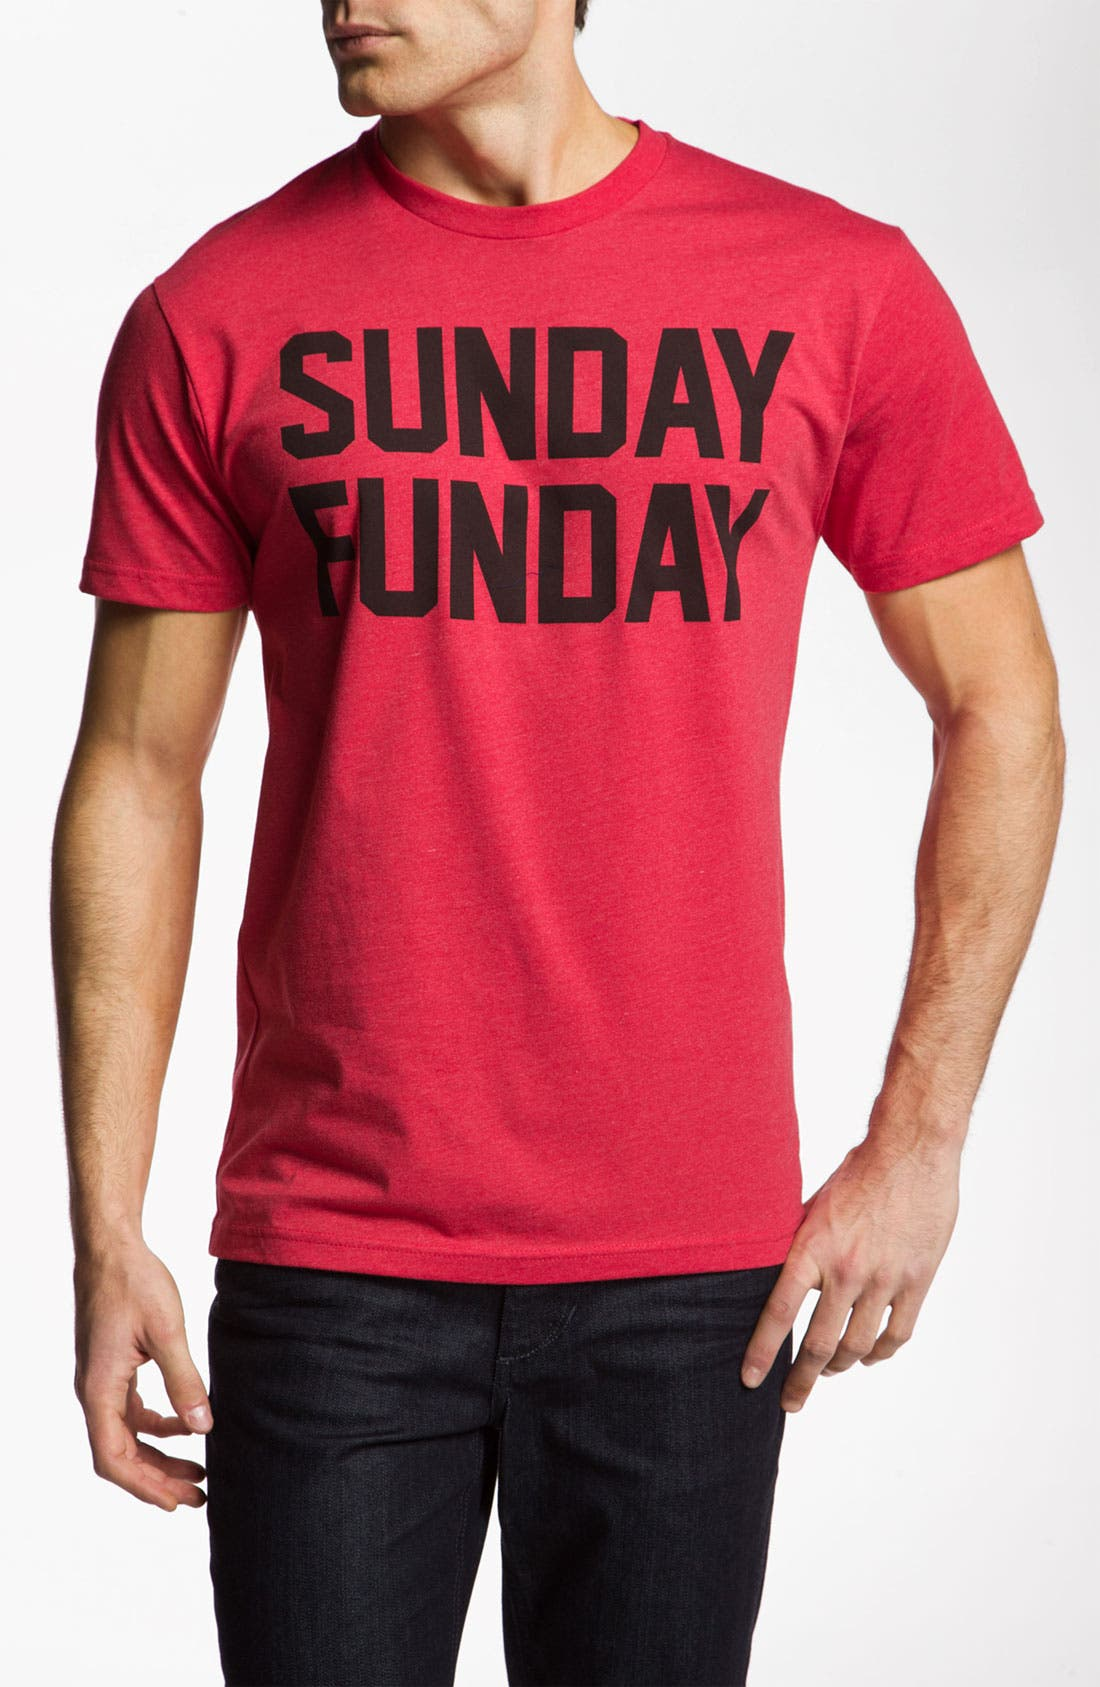 Alternate Image 1 Selected - Kid Dangerous Grime Couture 'Sunday Funday' Graphic T-Shirt